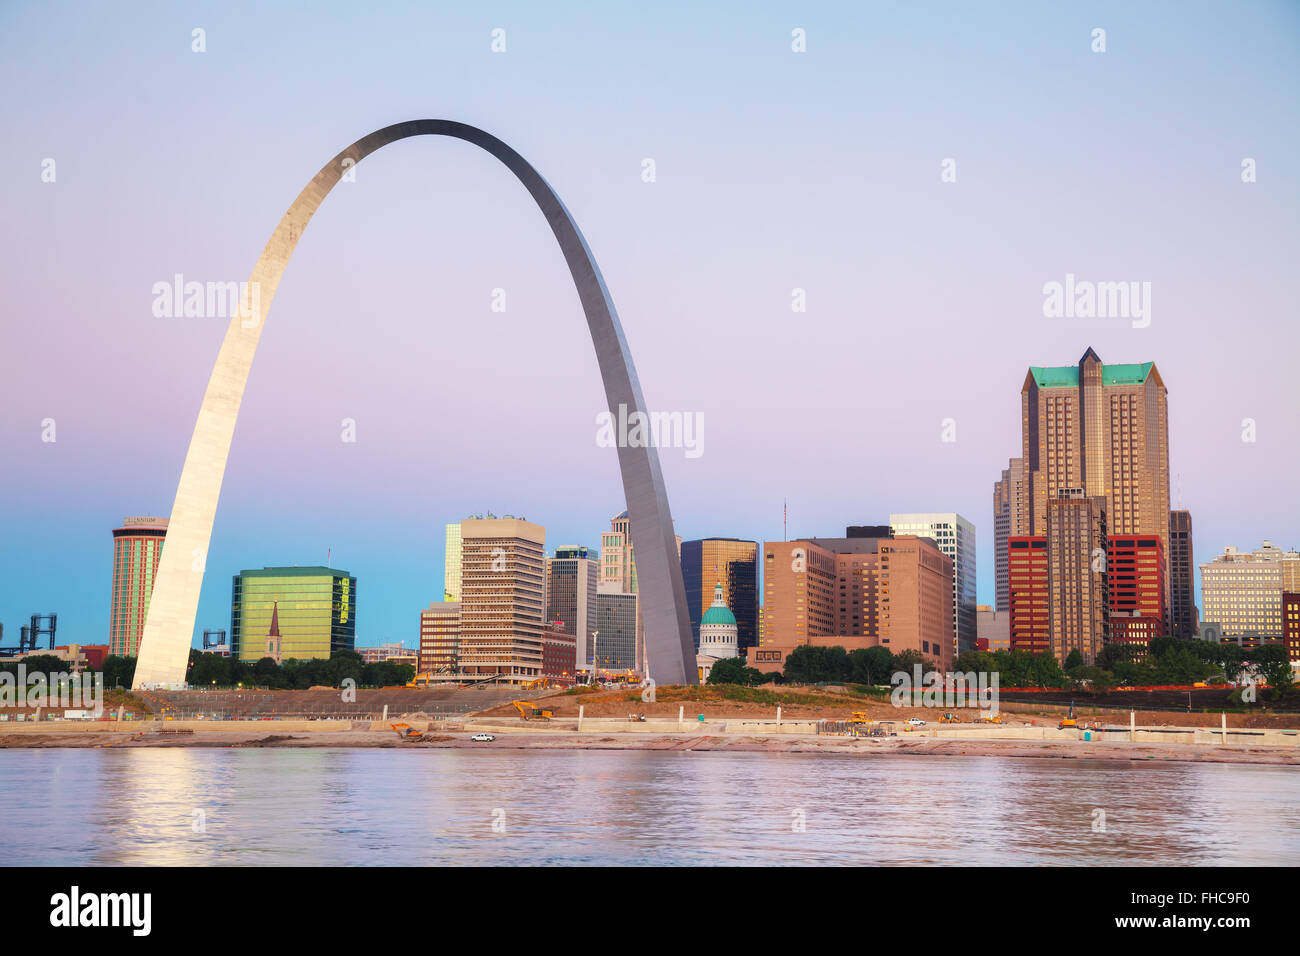 Downtown St Louis, MO with the Old Courthouse and the Gateway Arch at sunrise - Stock Image